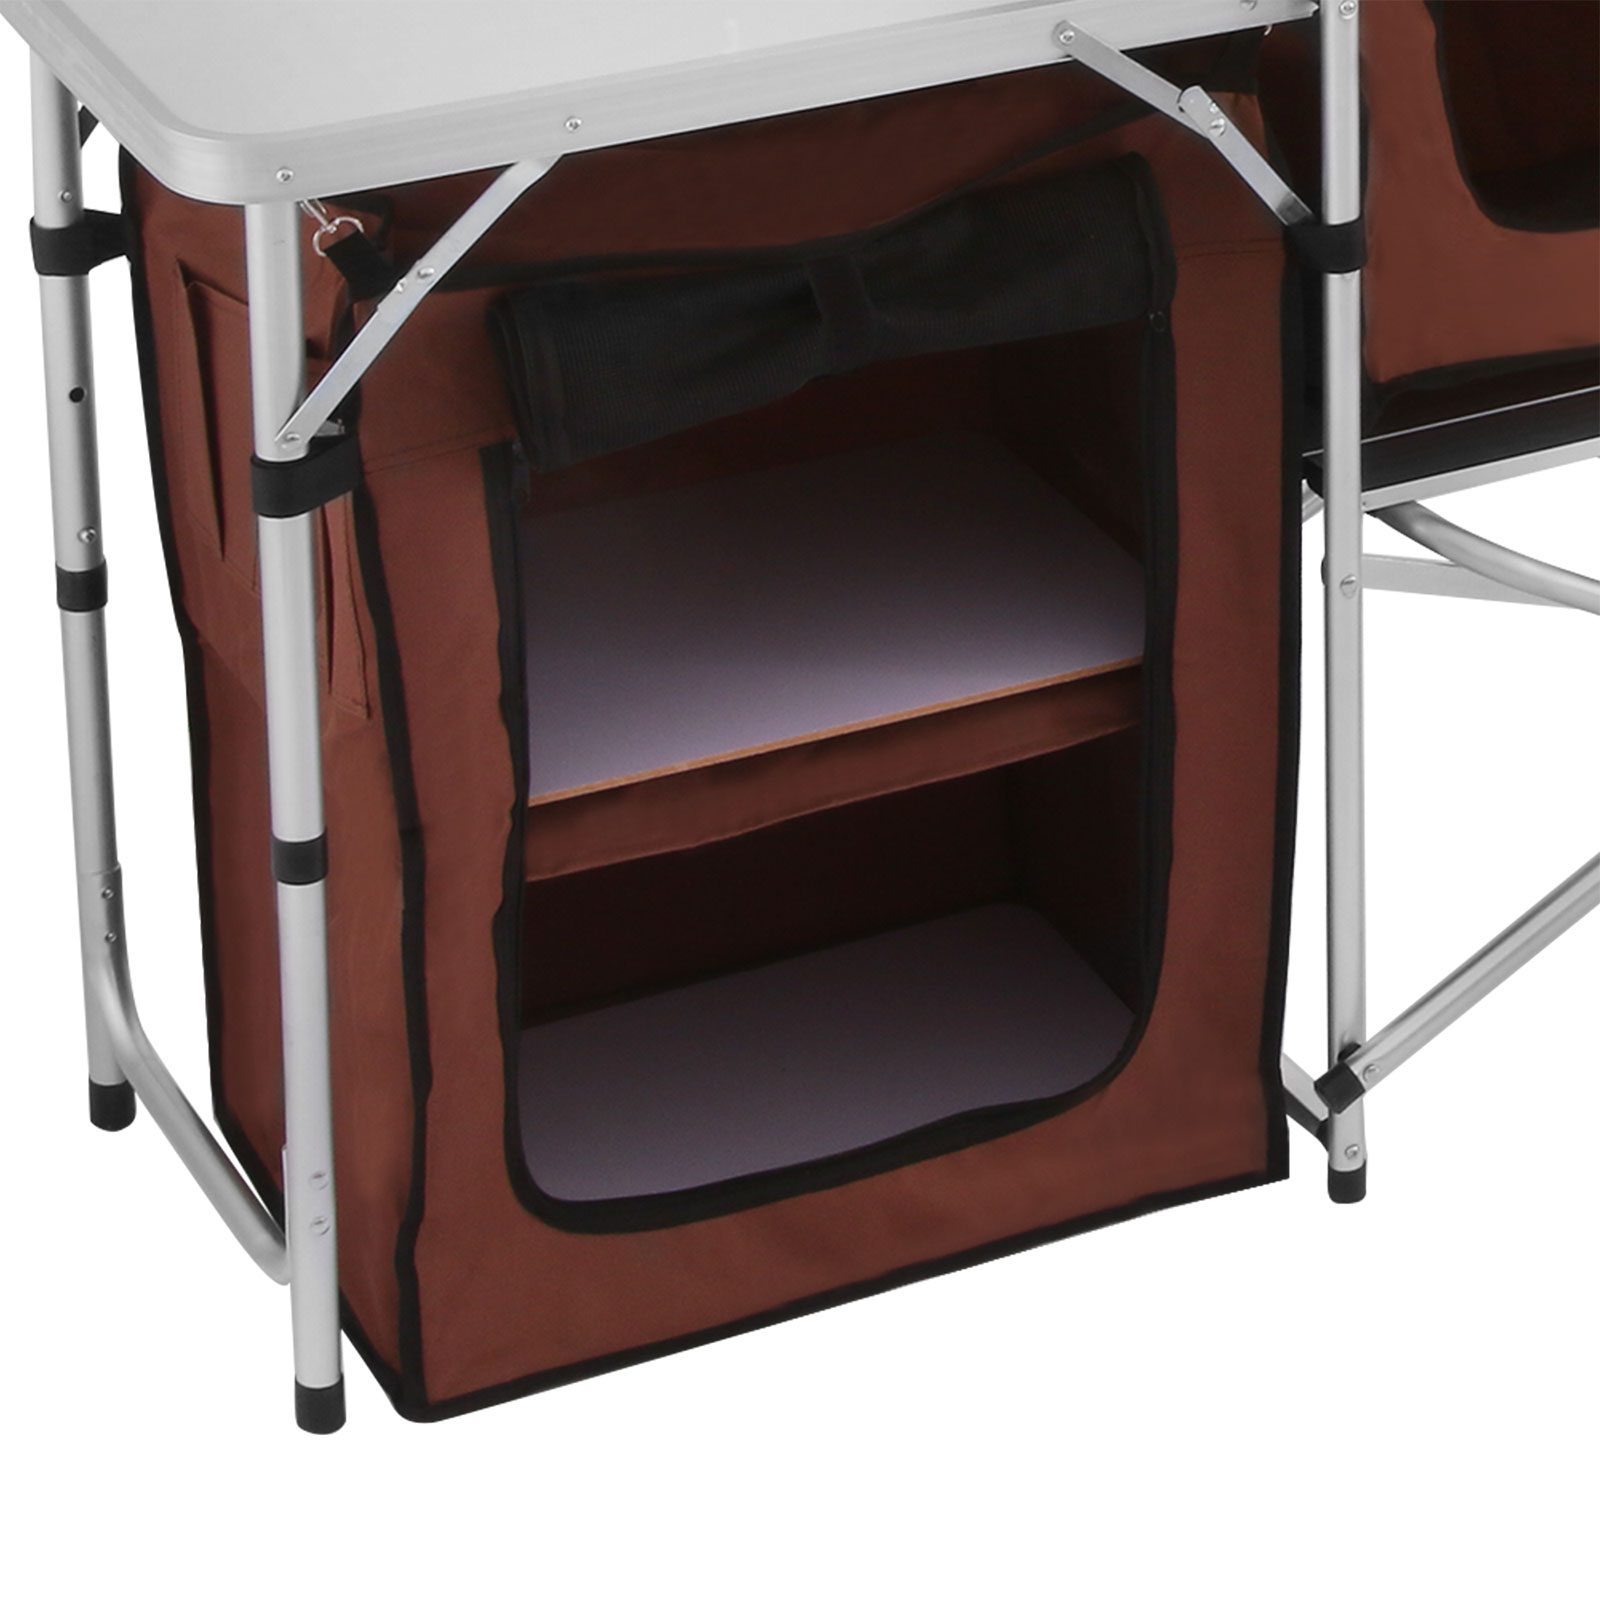 Kitchen Table With Food: CAMPING KITCHEN COOKING TABLE FOOD PREP FOOD STORAGE ADJUSTABLE FOLDING 895801183706